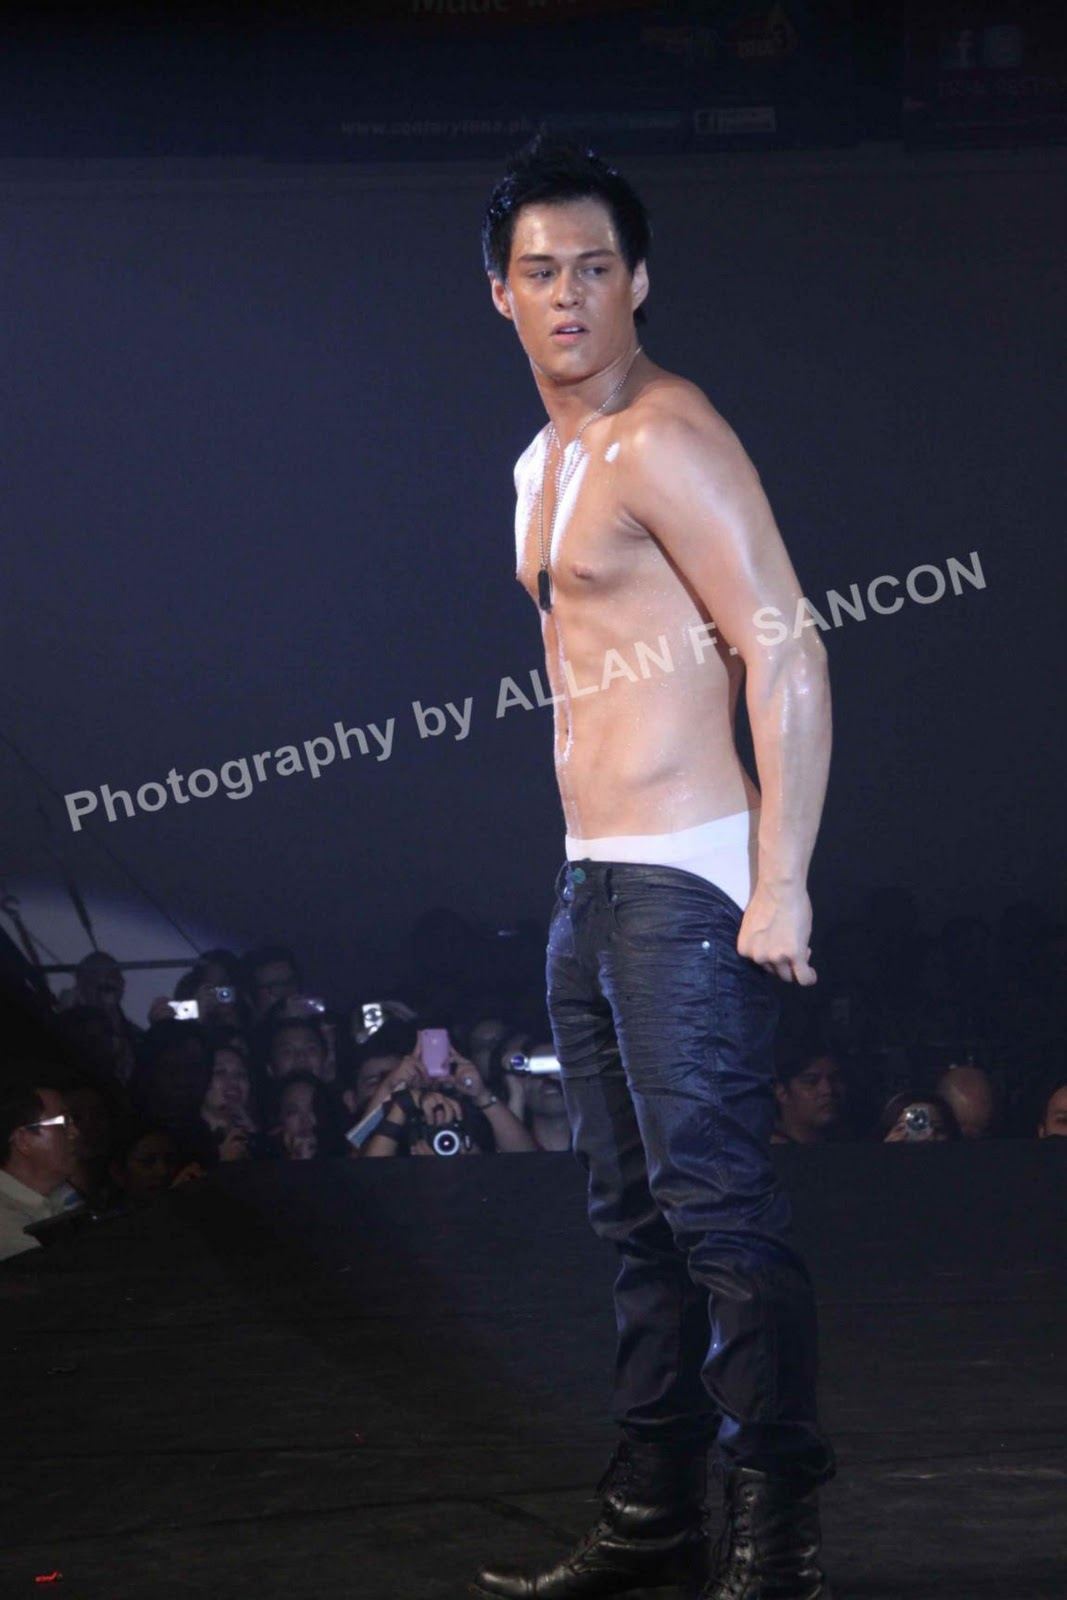 Jake Cuenca ramped wearing only brief: Enrique Gil shows his butt